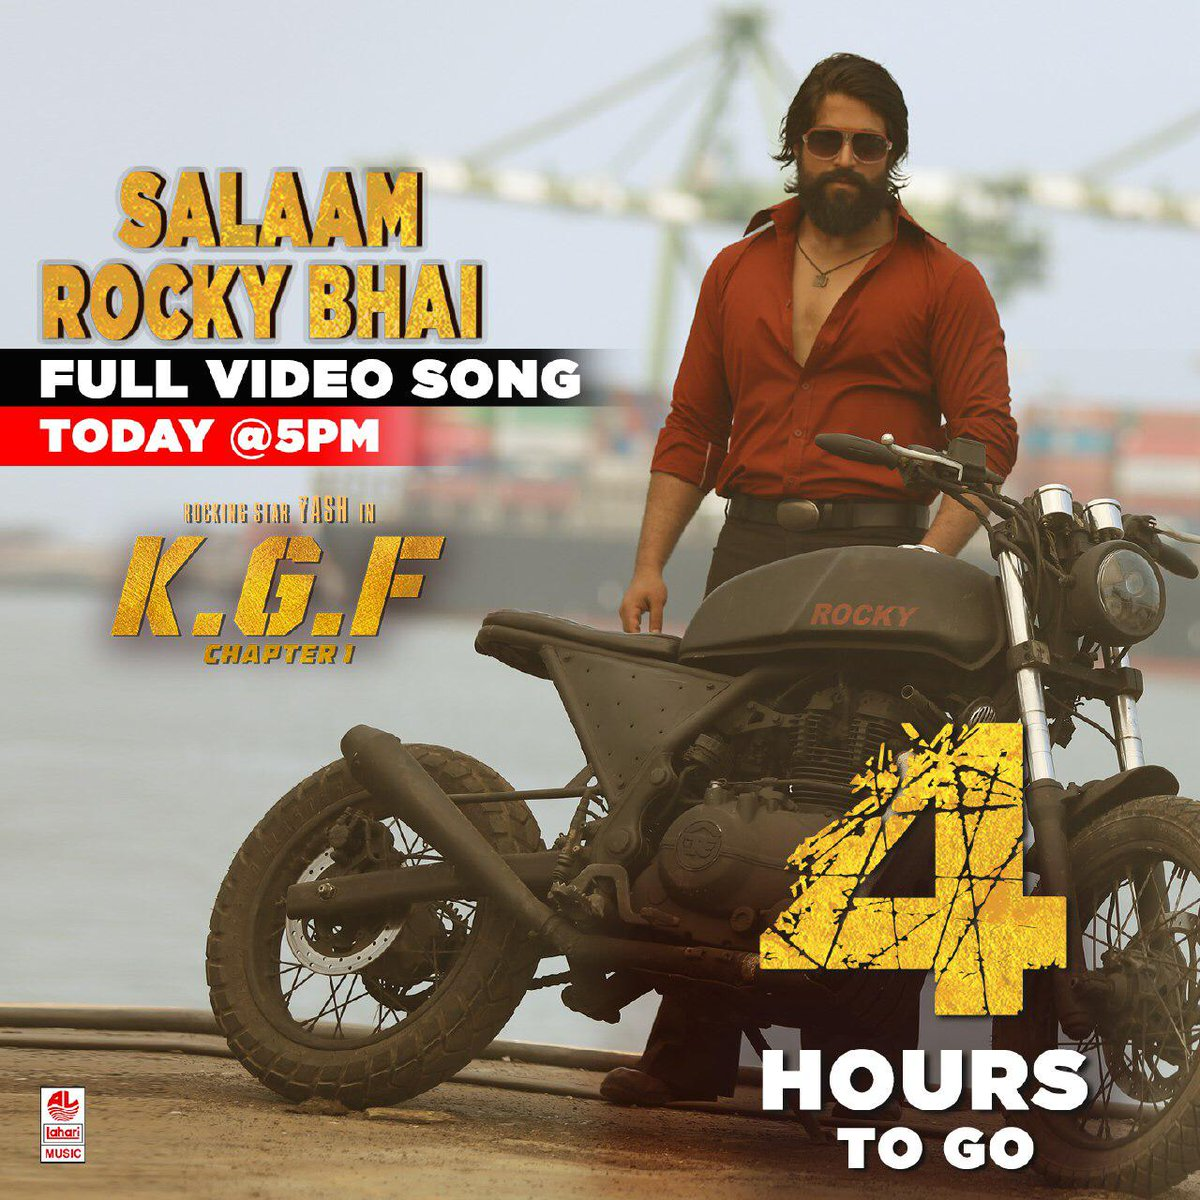 4 hours to go for #SalaamRockyBhai full video song from #KGF